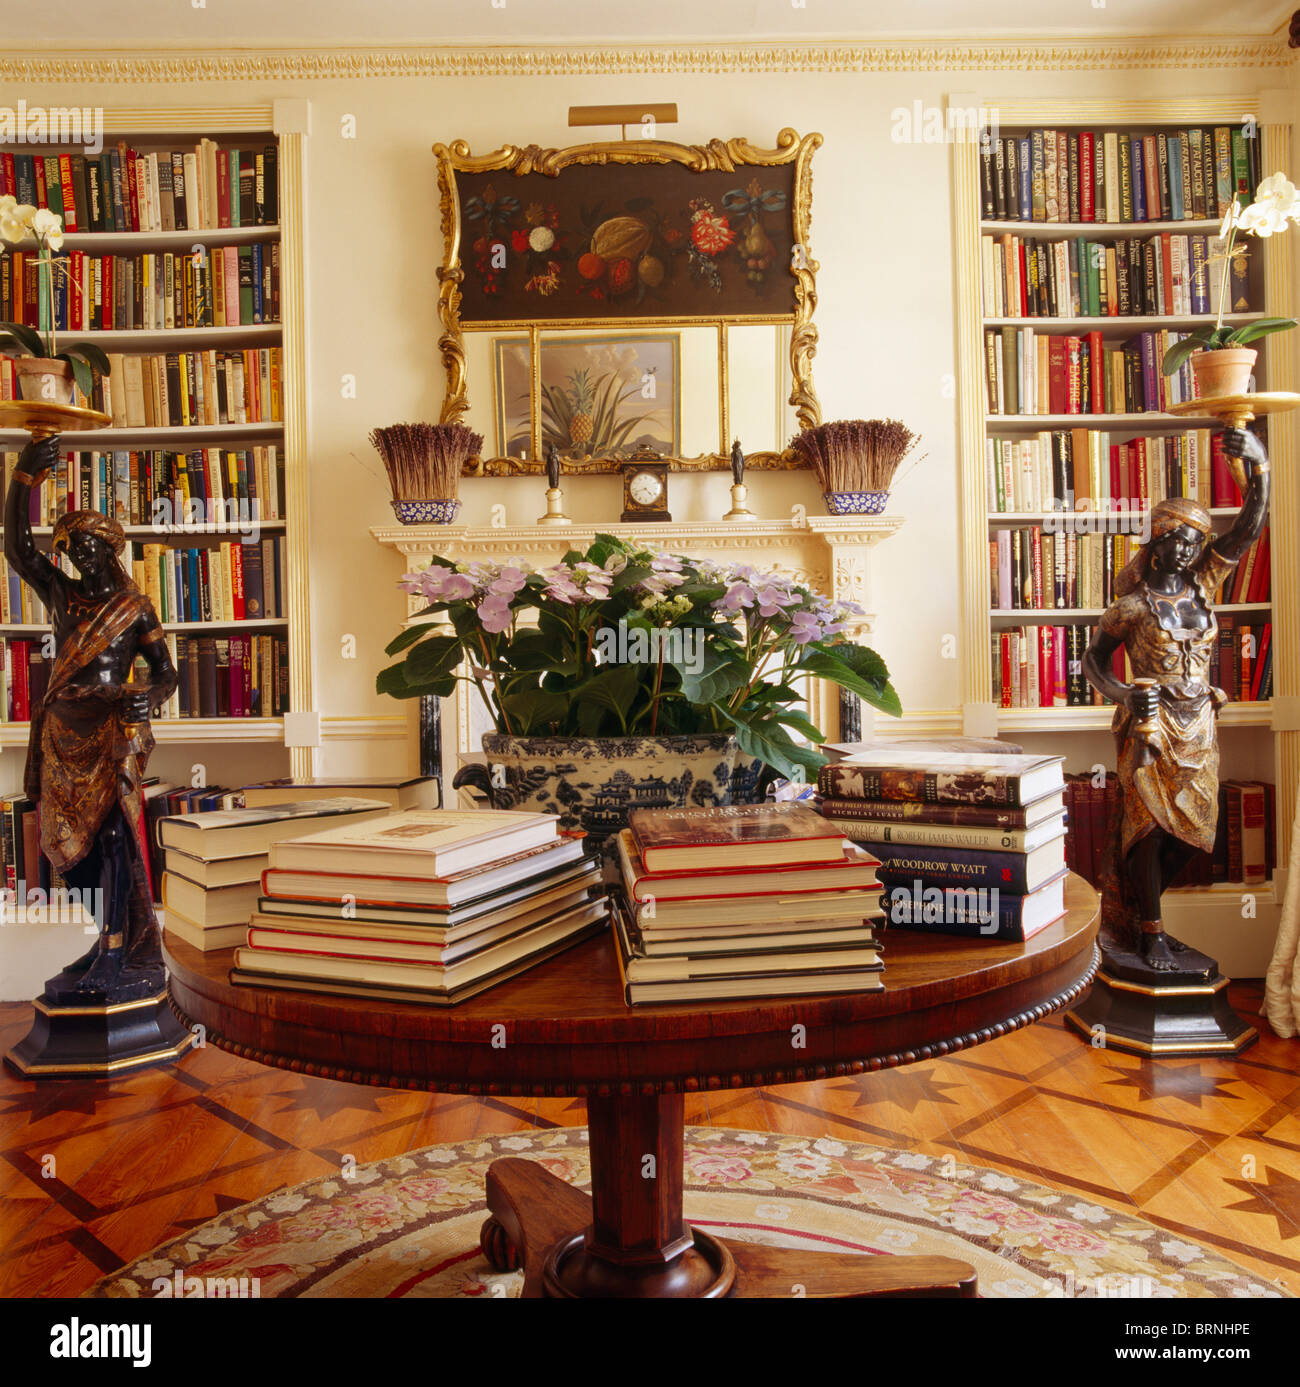 Books In Piles On Circular Antique Table Library Dining